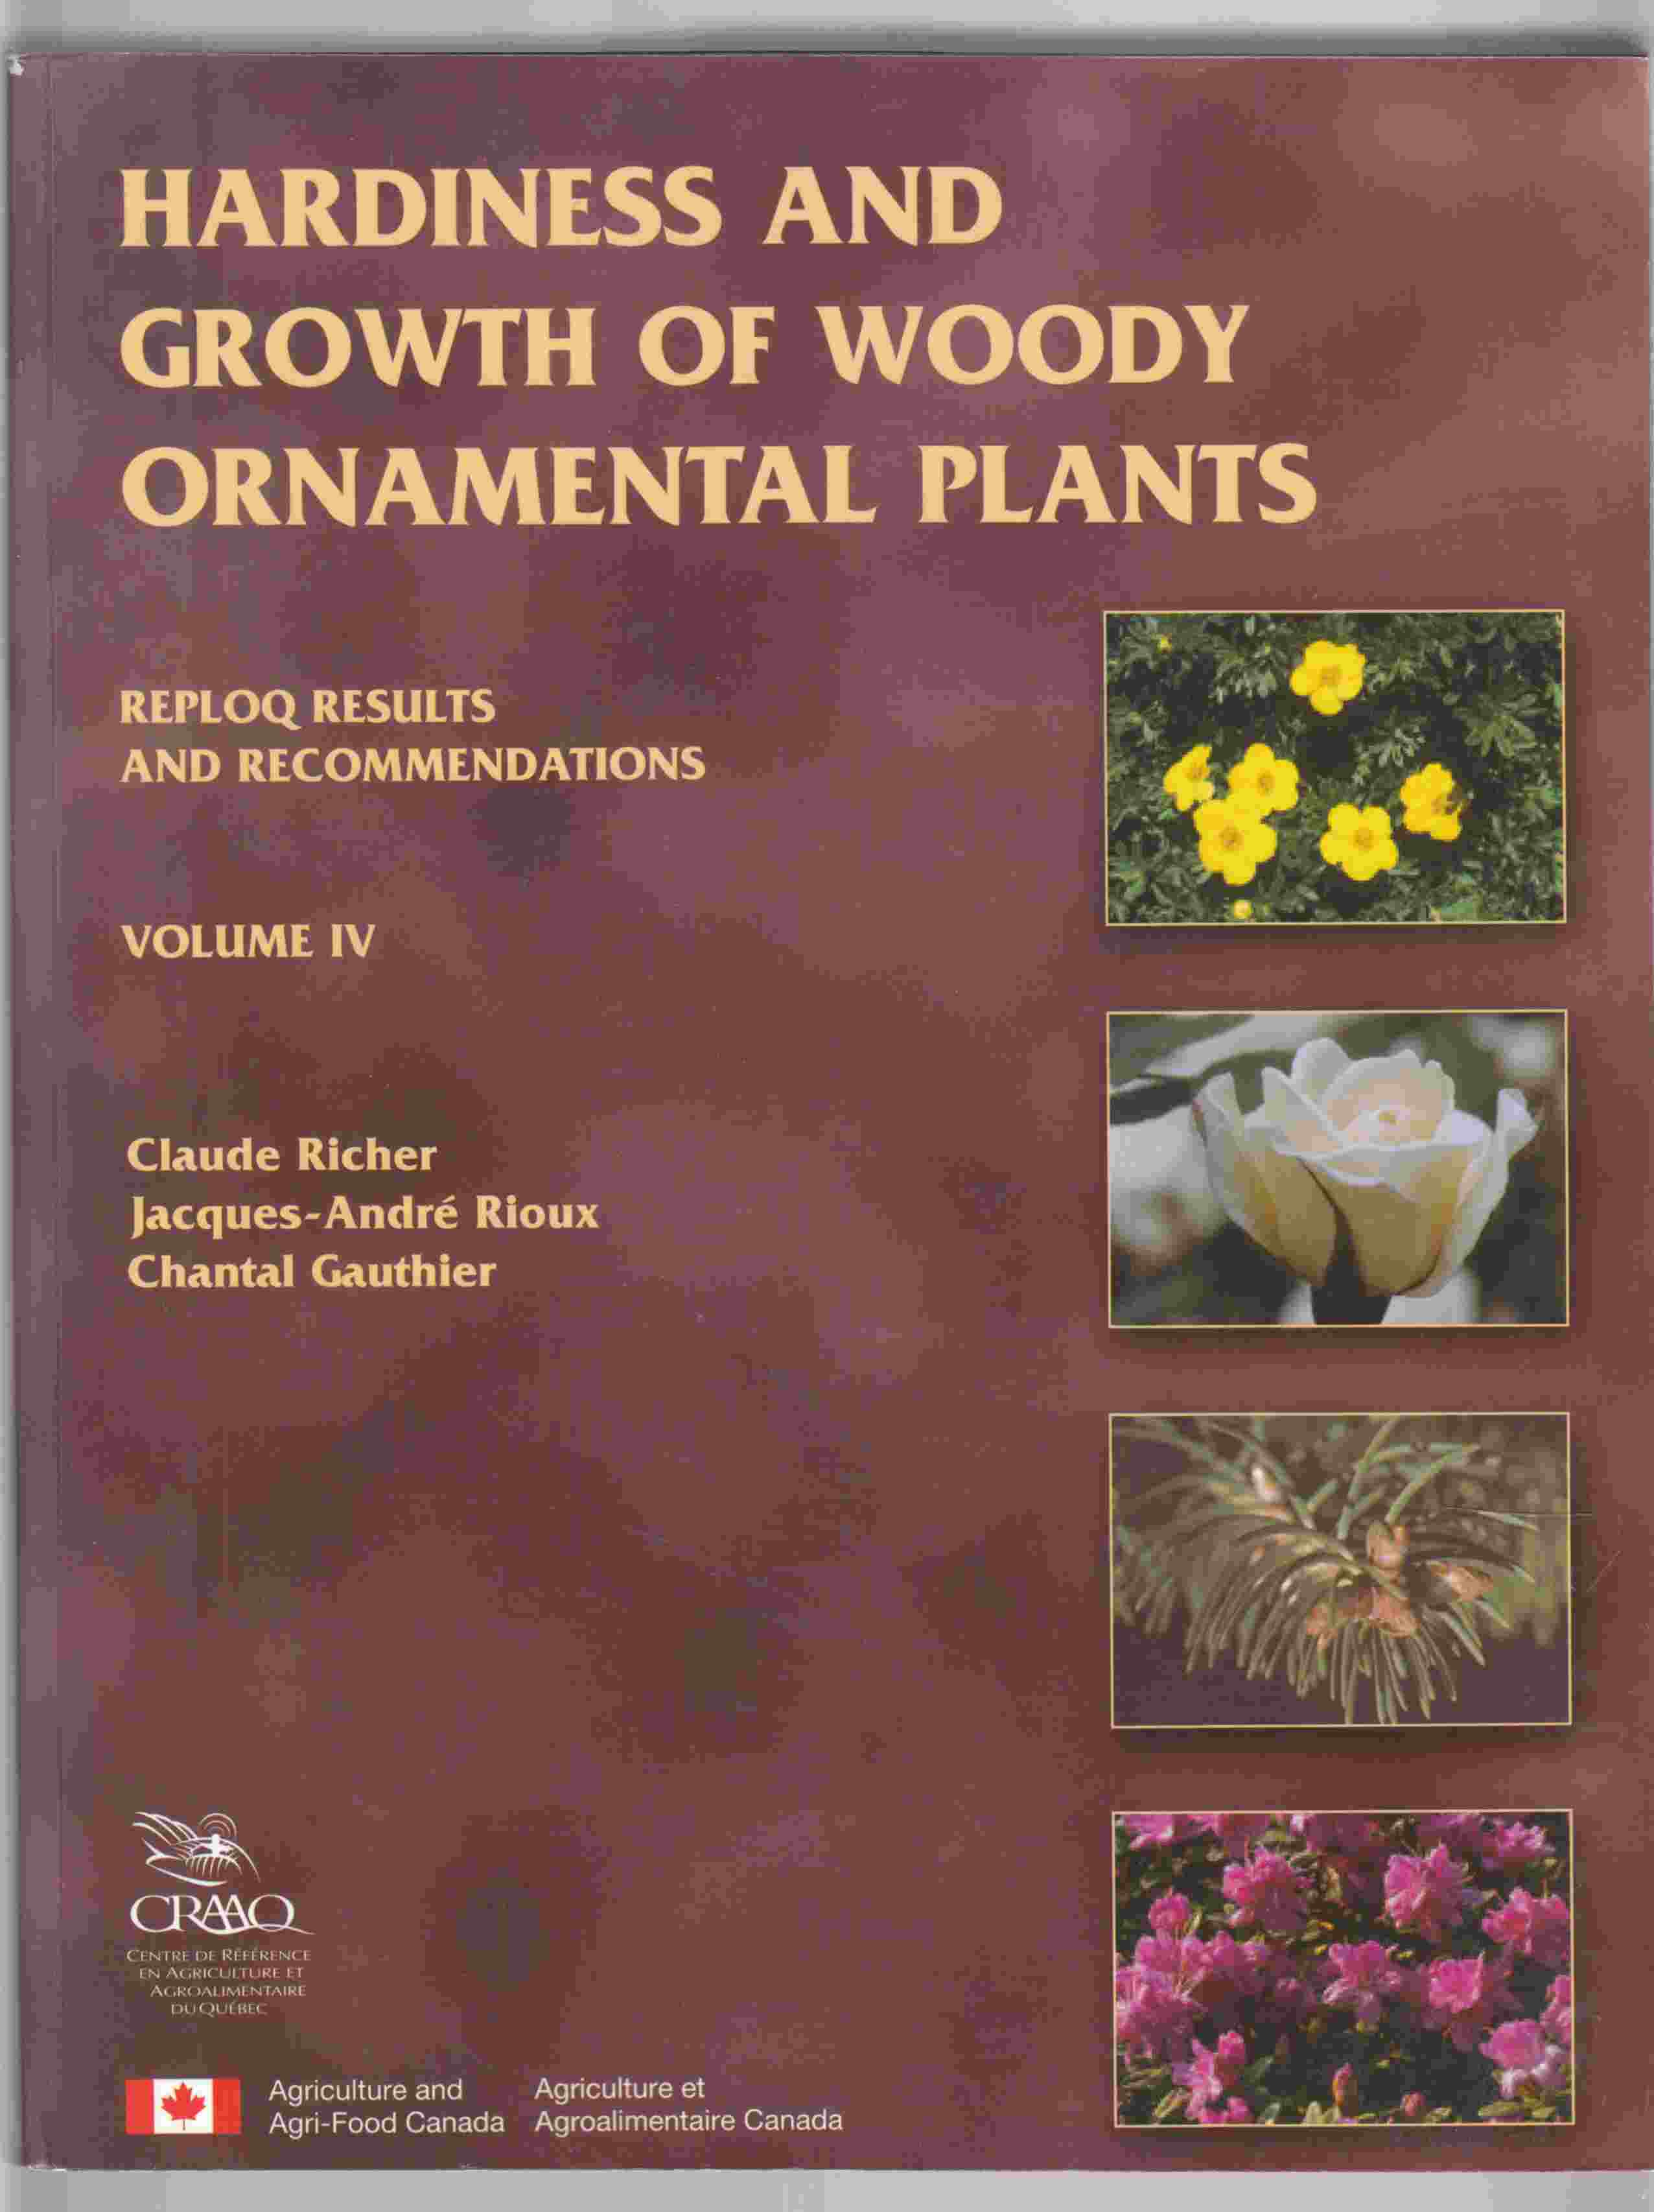 Image for Hardiness and Growth of Woody Ornamental Plants Volume IV REPLOQ Results and Recommendations